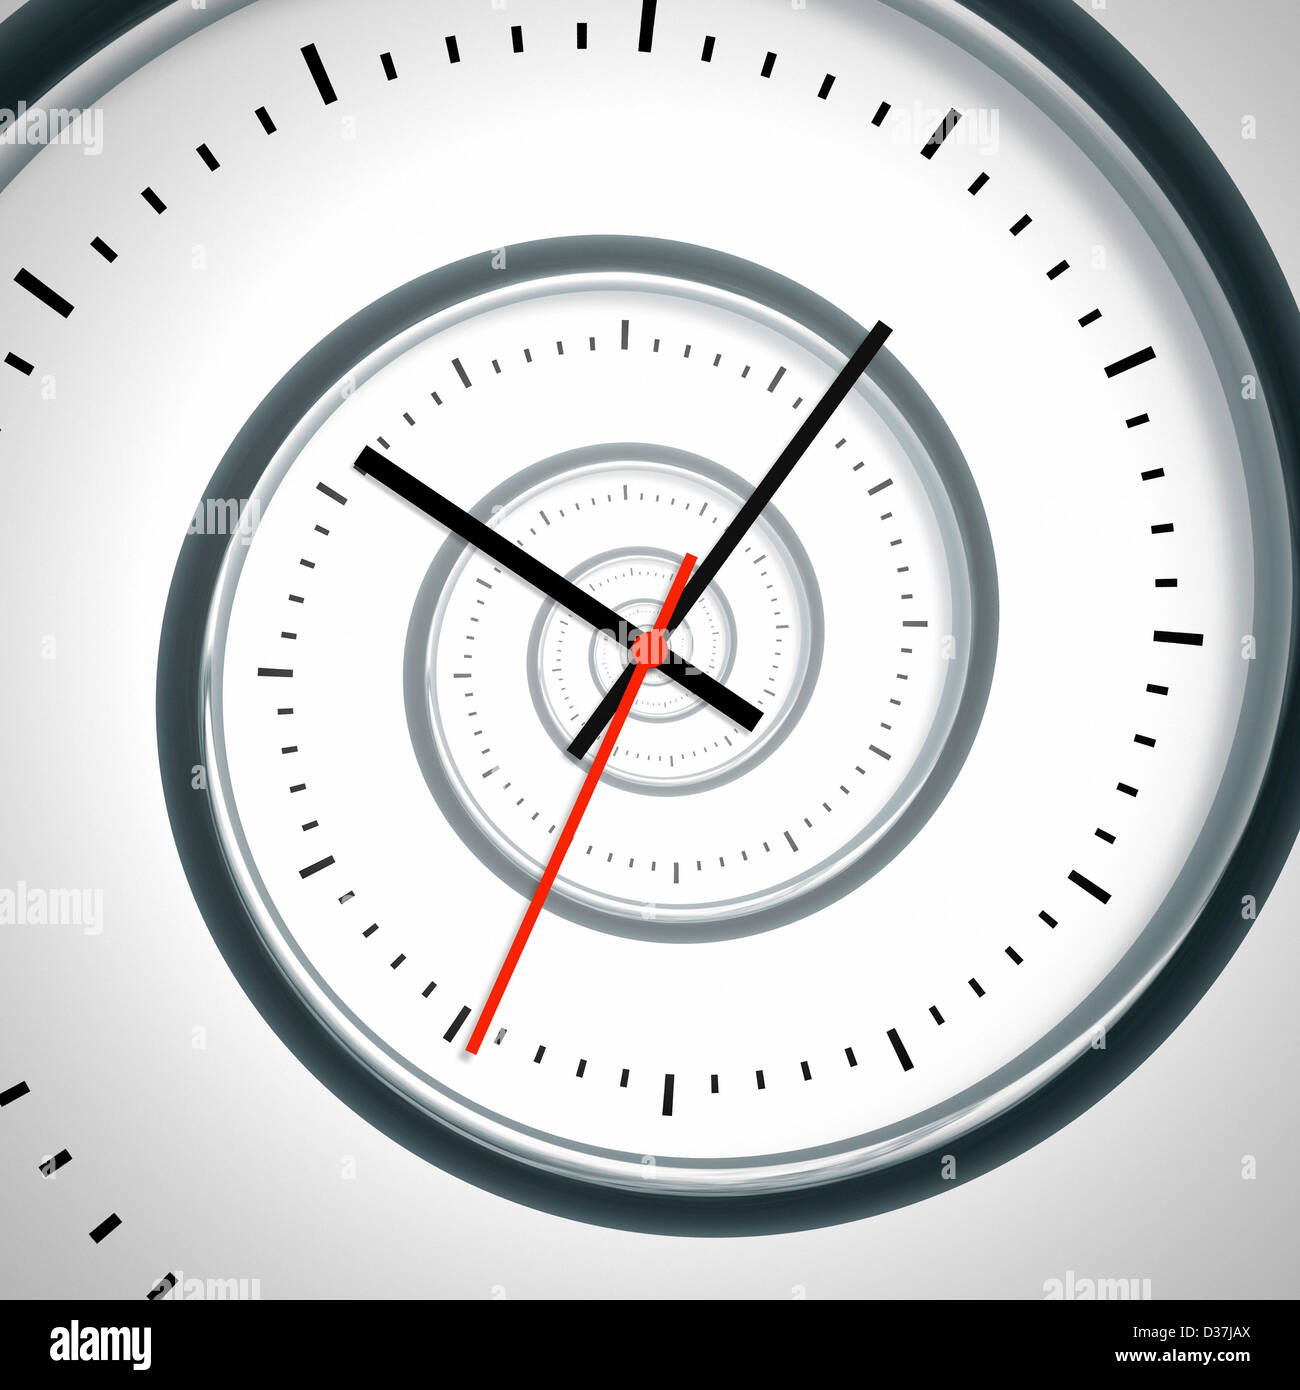 An image of a nice time spiral clock - Stock Image